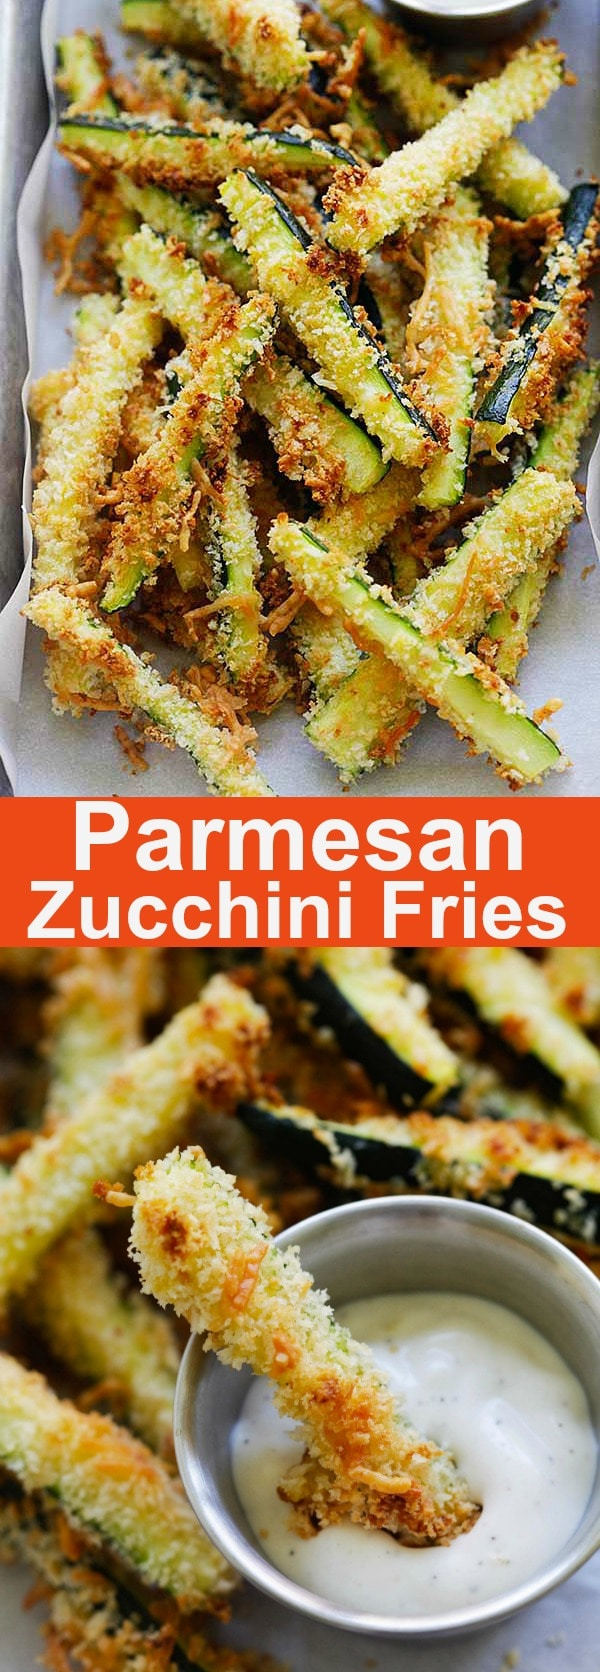 Crispy baked zucchini fries made with Japanese panko bread crumbs and Parmesan cheese. Serve the zucchini fries with ranch dressing as a healthy and delicious snack | rasamalaysia.com